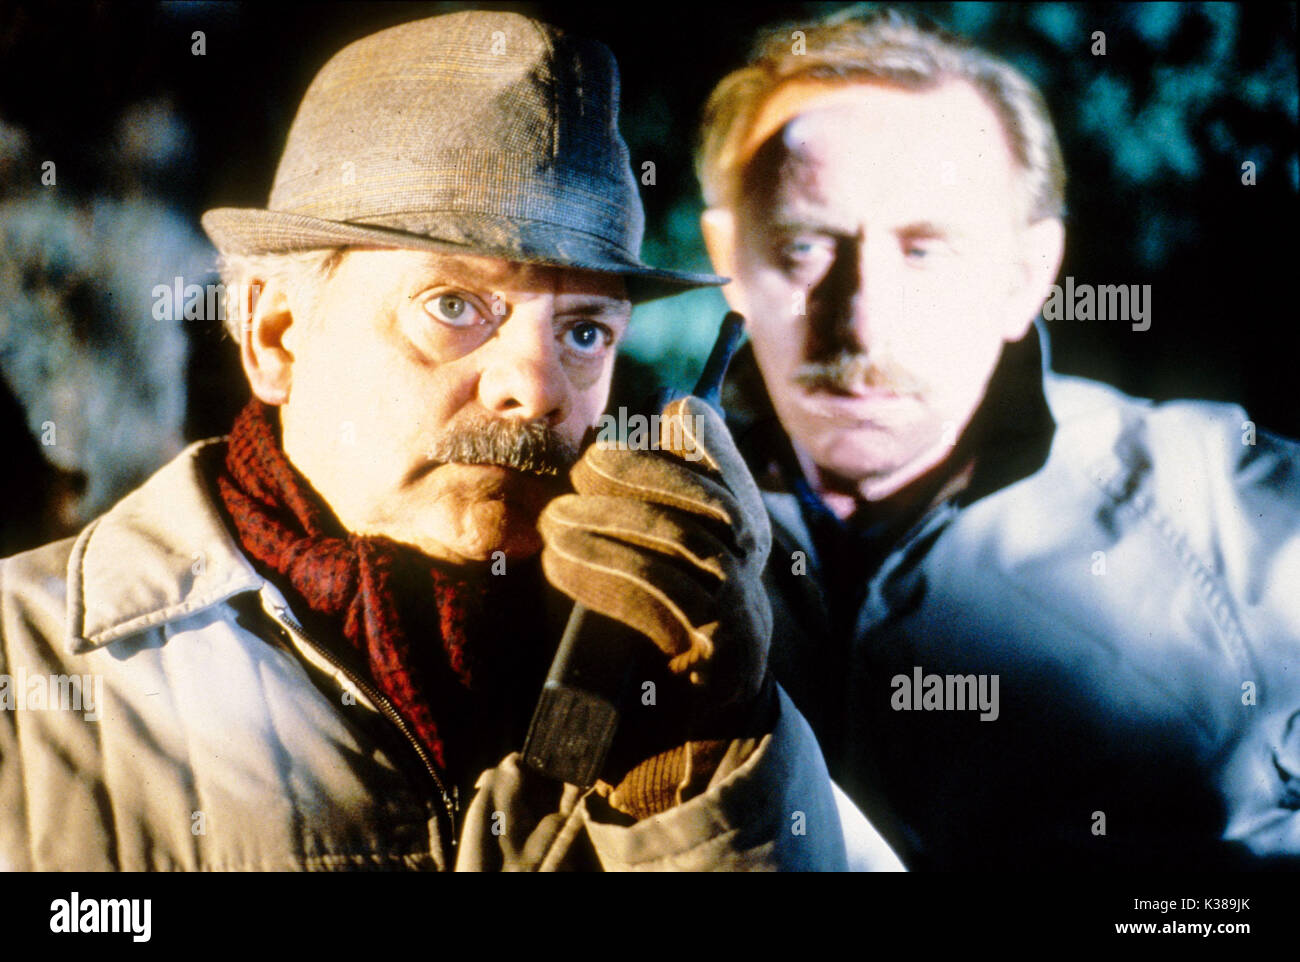 TOUCH OF FROST YORKSHIRE TELEVISION DAVID JASON, left - Stock Image